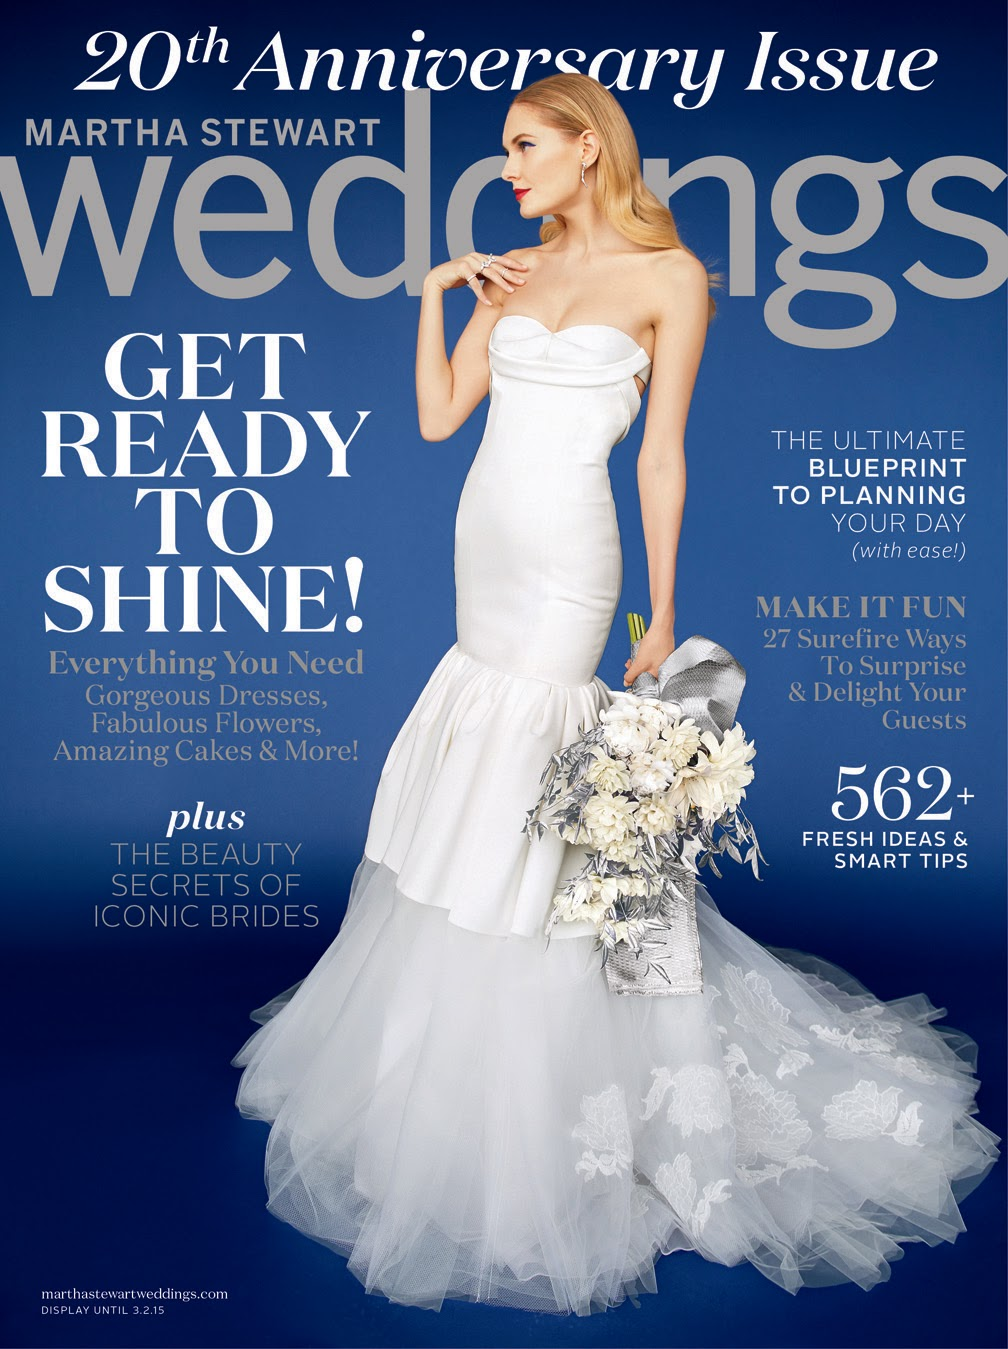 Vera Wang by Erik Madigan Heck for Martha Stewart Weddings